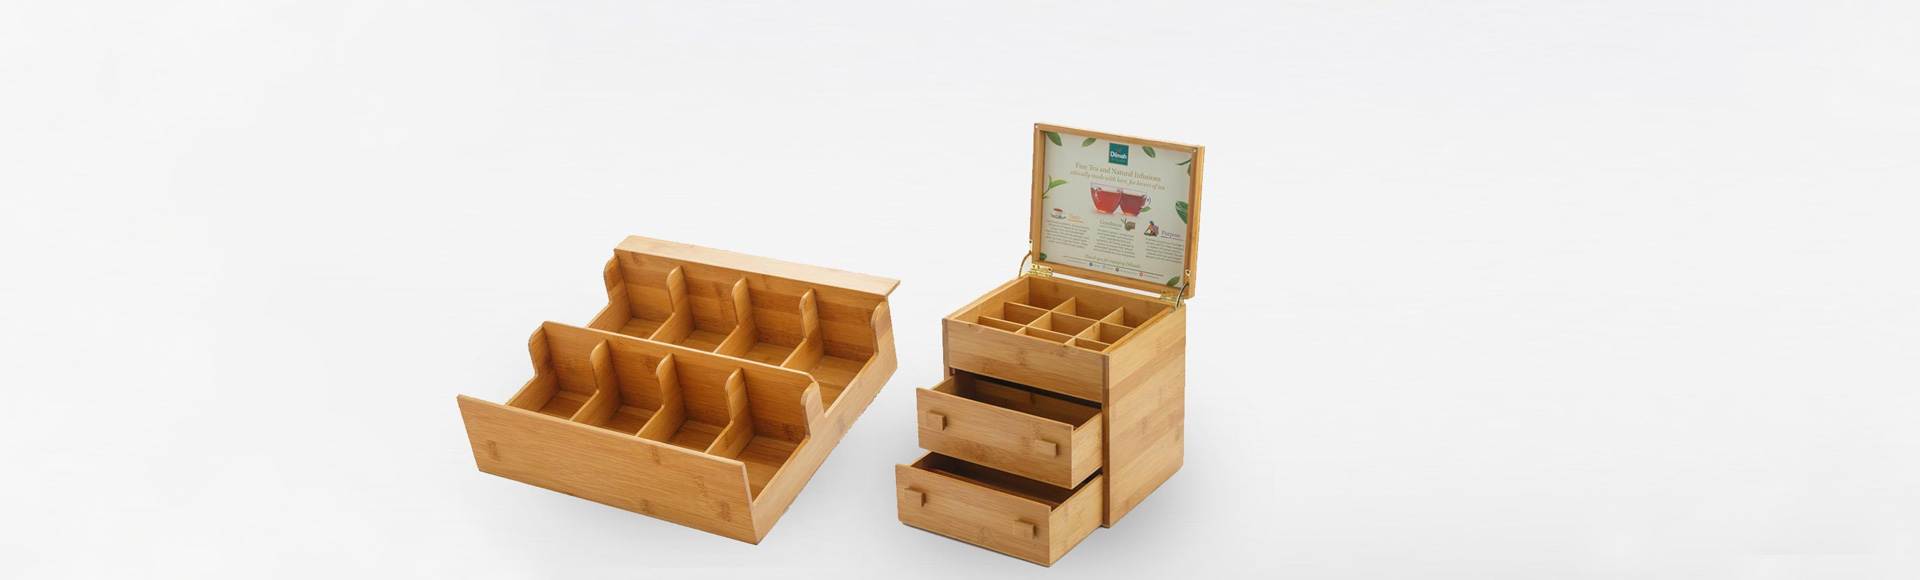 Timber Concepts Furniture Display Units